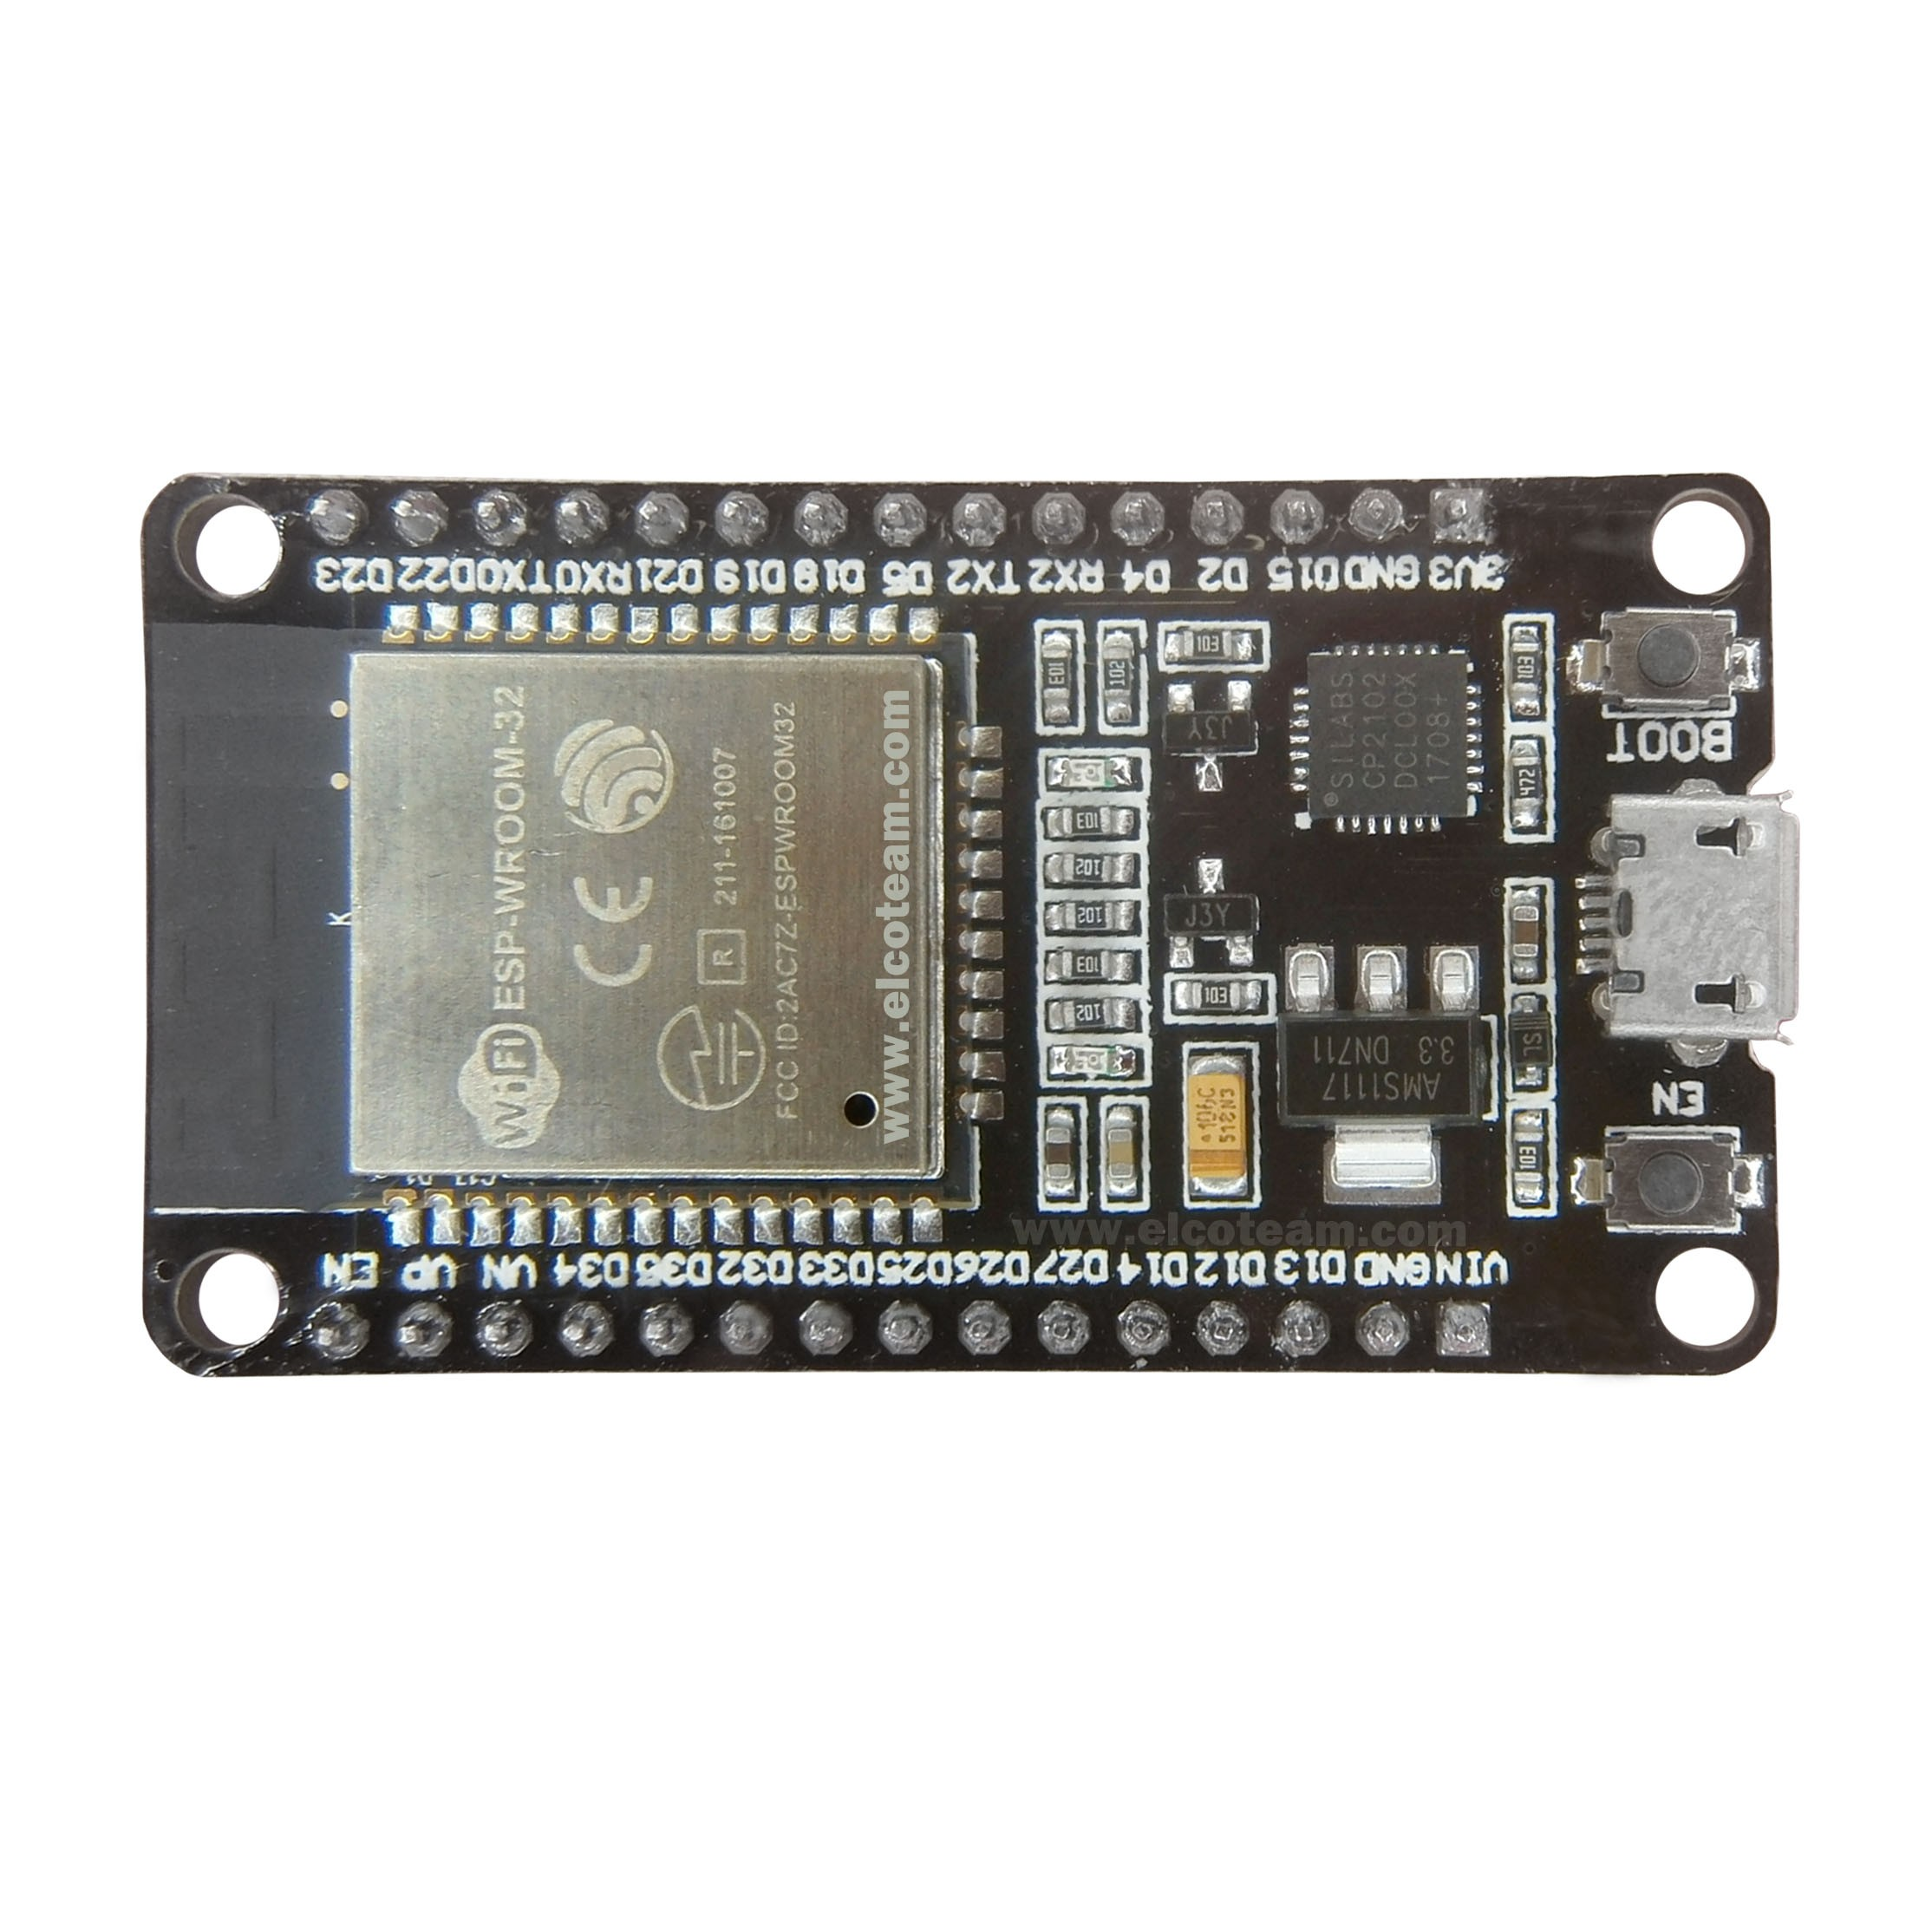 ESP32 DevKIT V1 module with WiFi and Bluetooth BLE